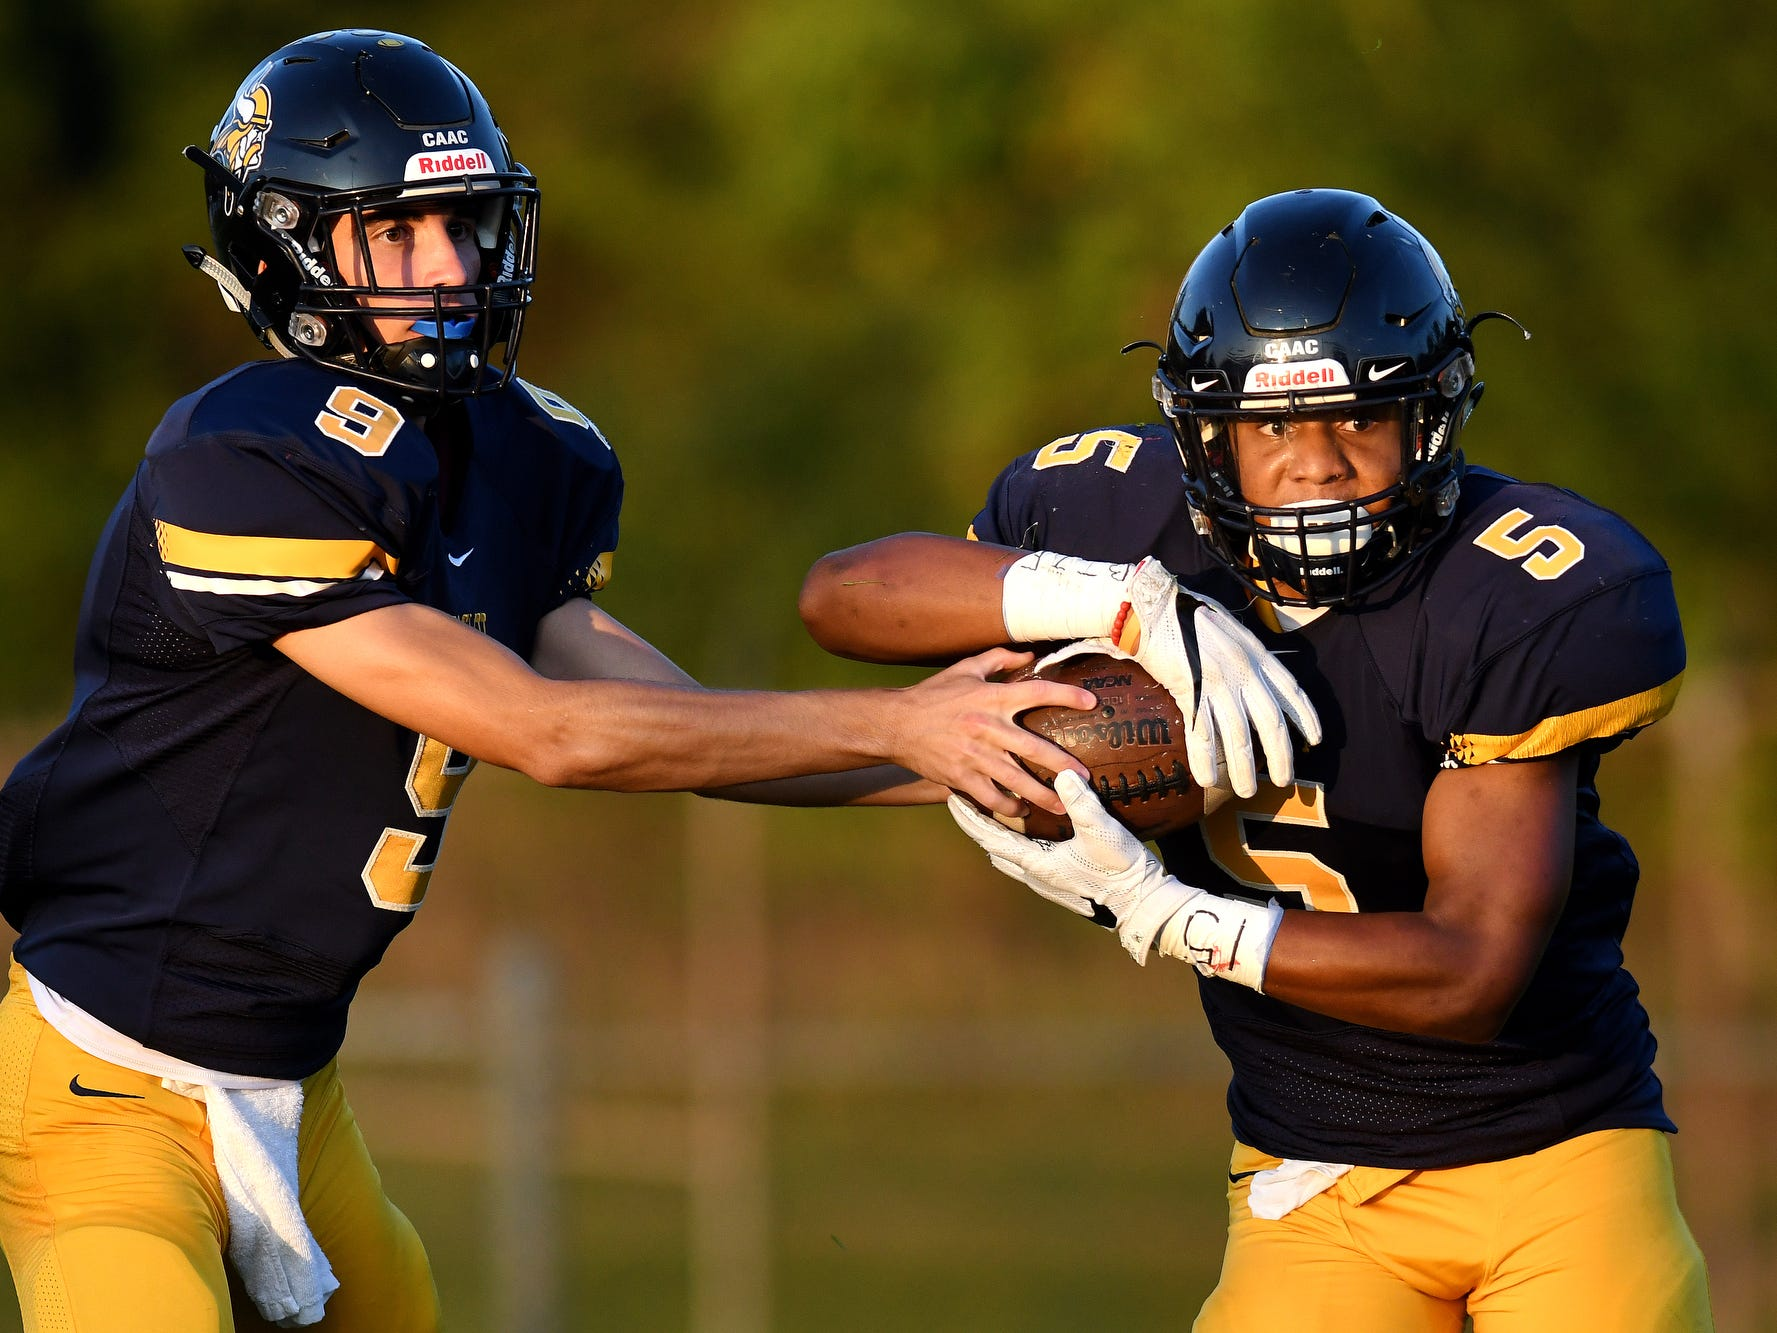 Haslett's Benjamin Brittain, right, takes a handoff from quarterback Mitchell Mowid during the second quarter on Friday, Sept. 14, 2018, at Haslett High School.